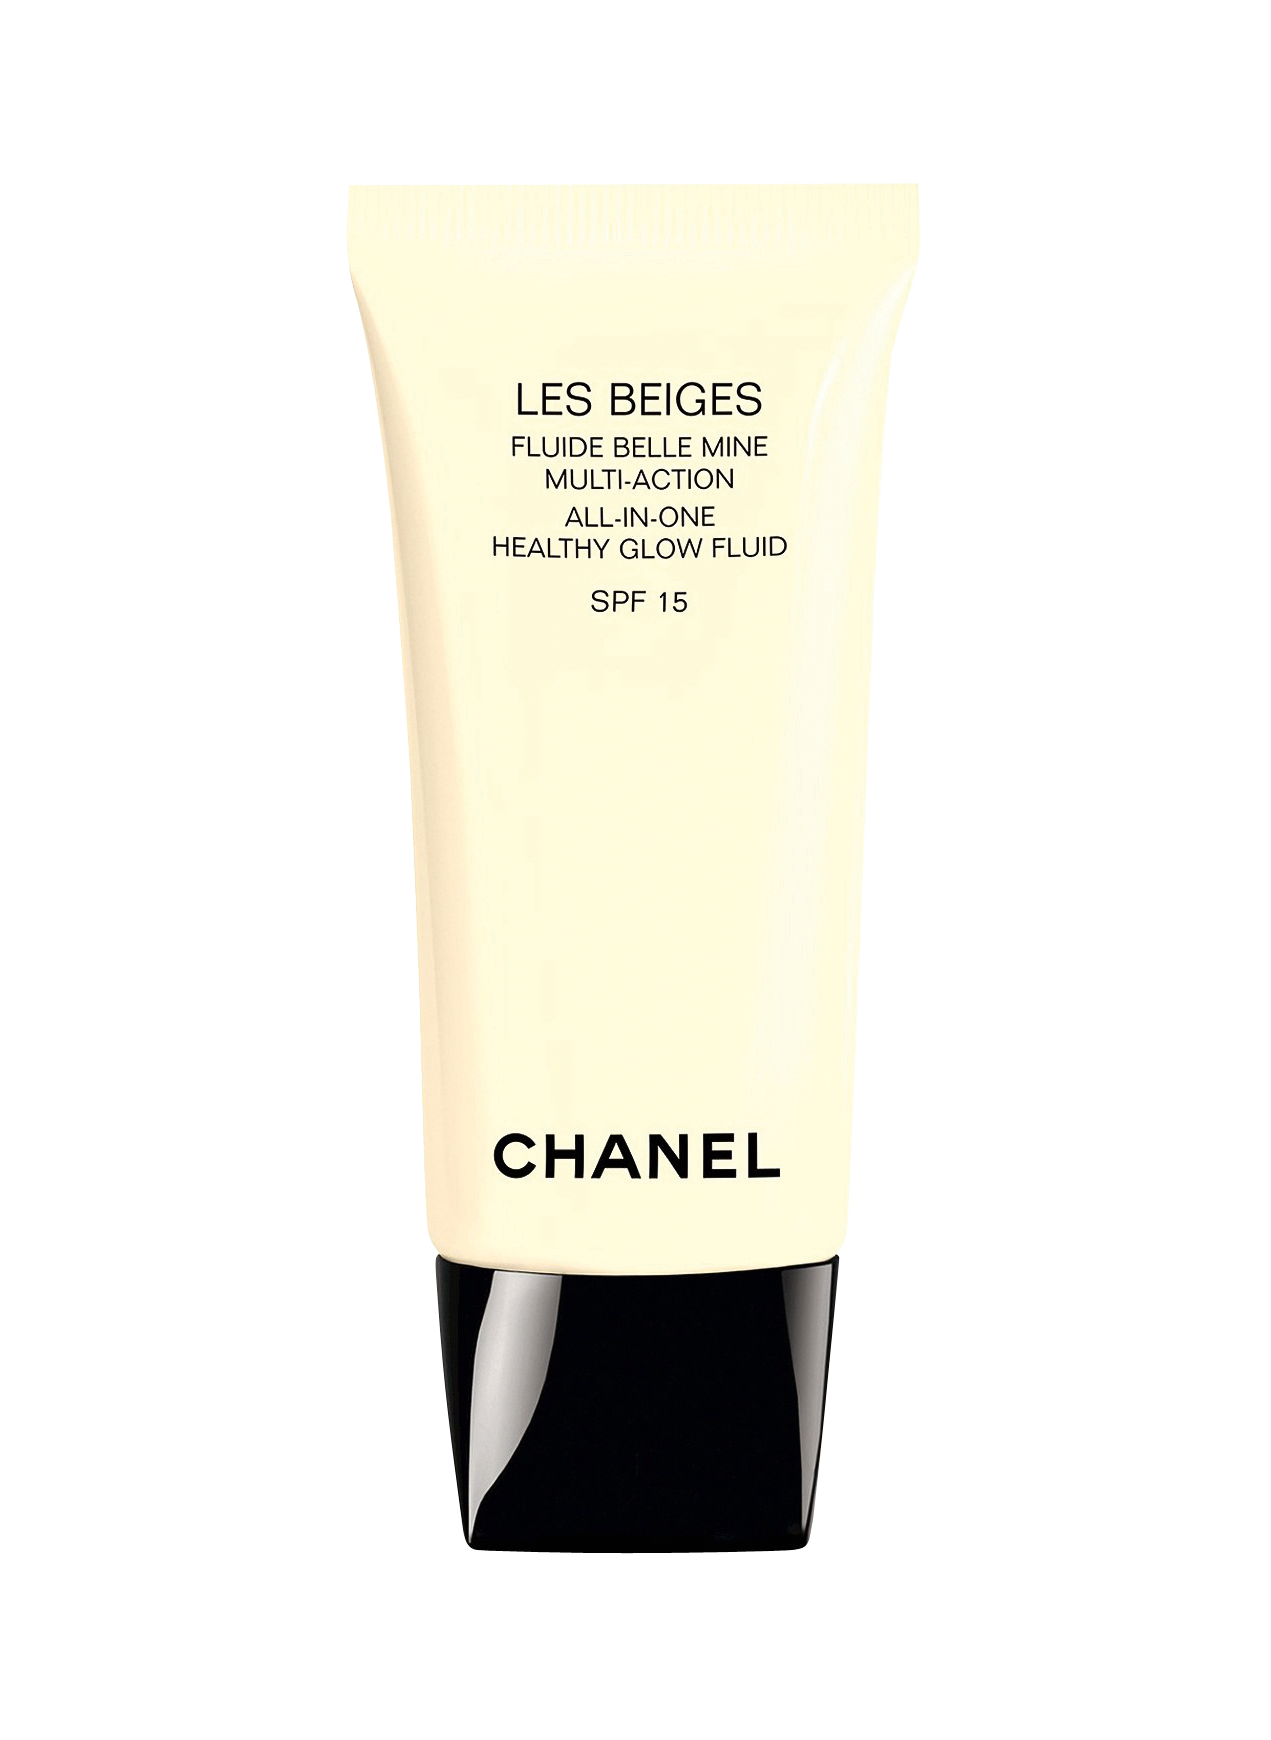 Beiges Beauty Healthy Fluid Lotion Les Make-Up PNG Image